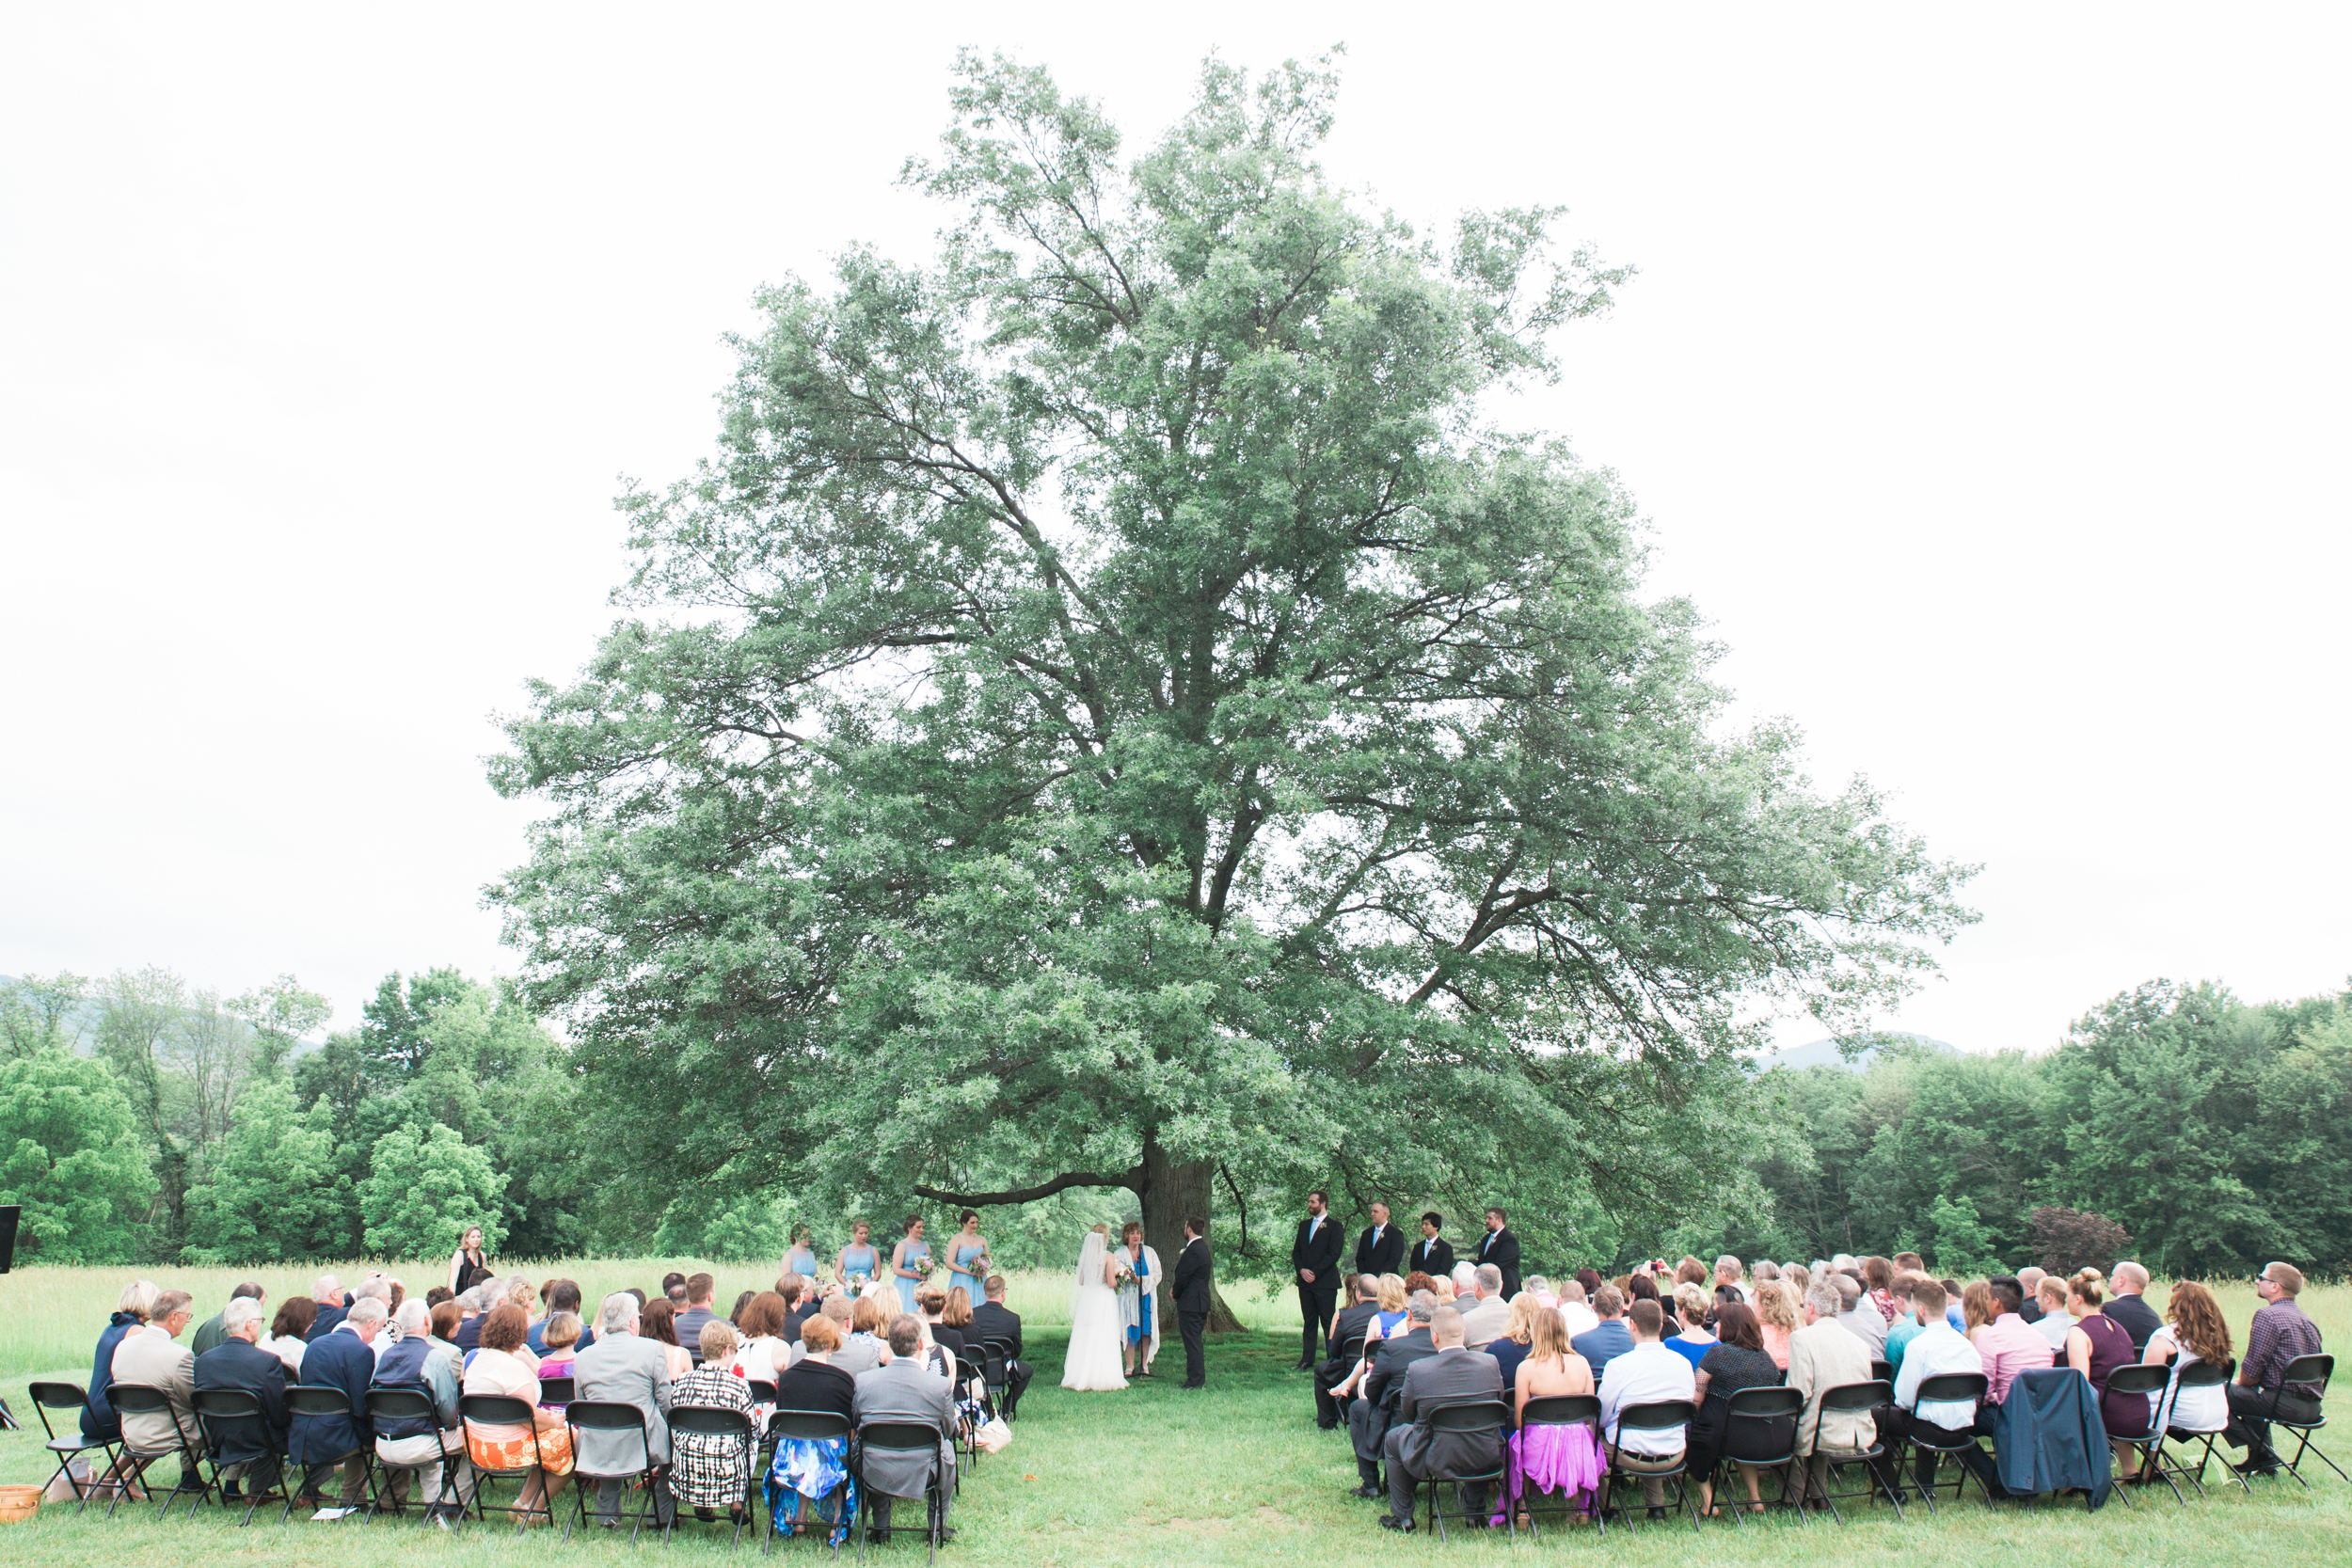 The Red Barn Wedding Reception